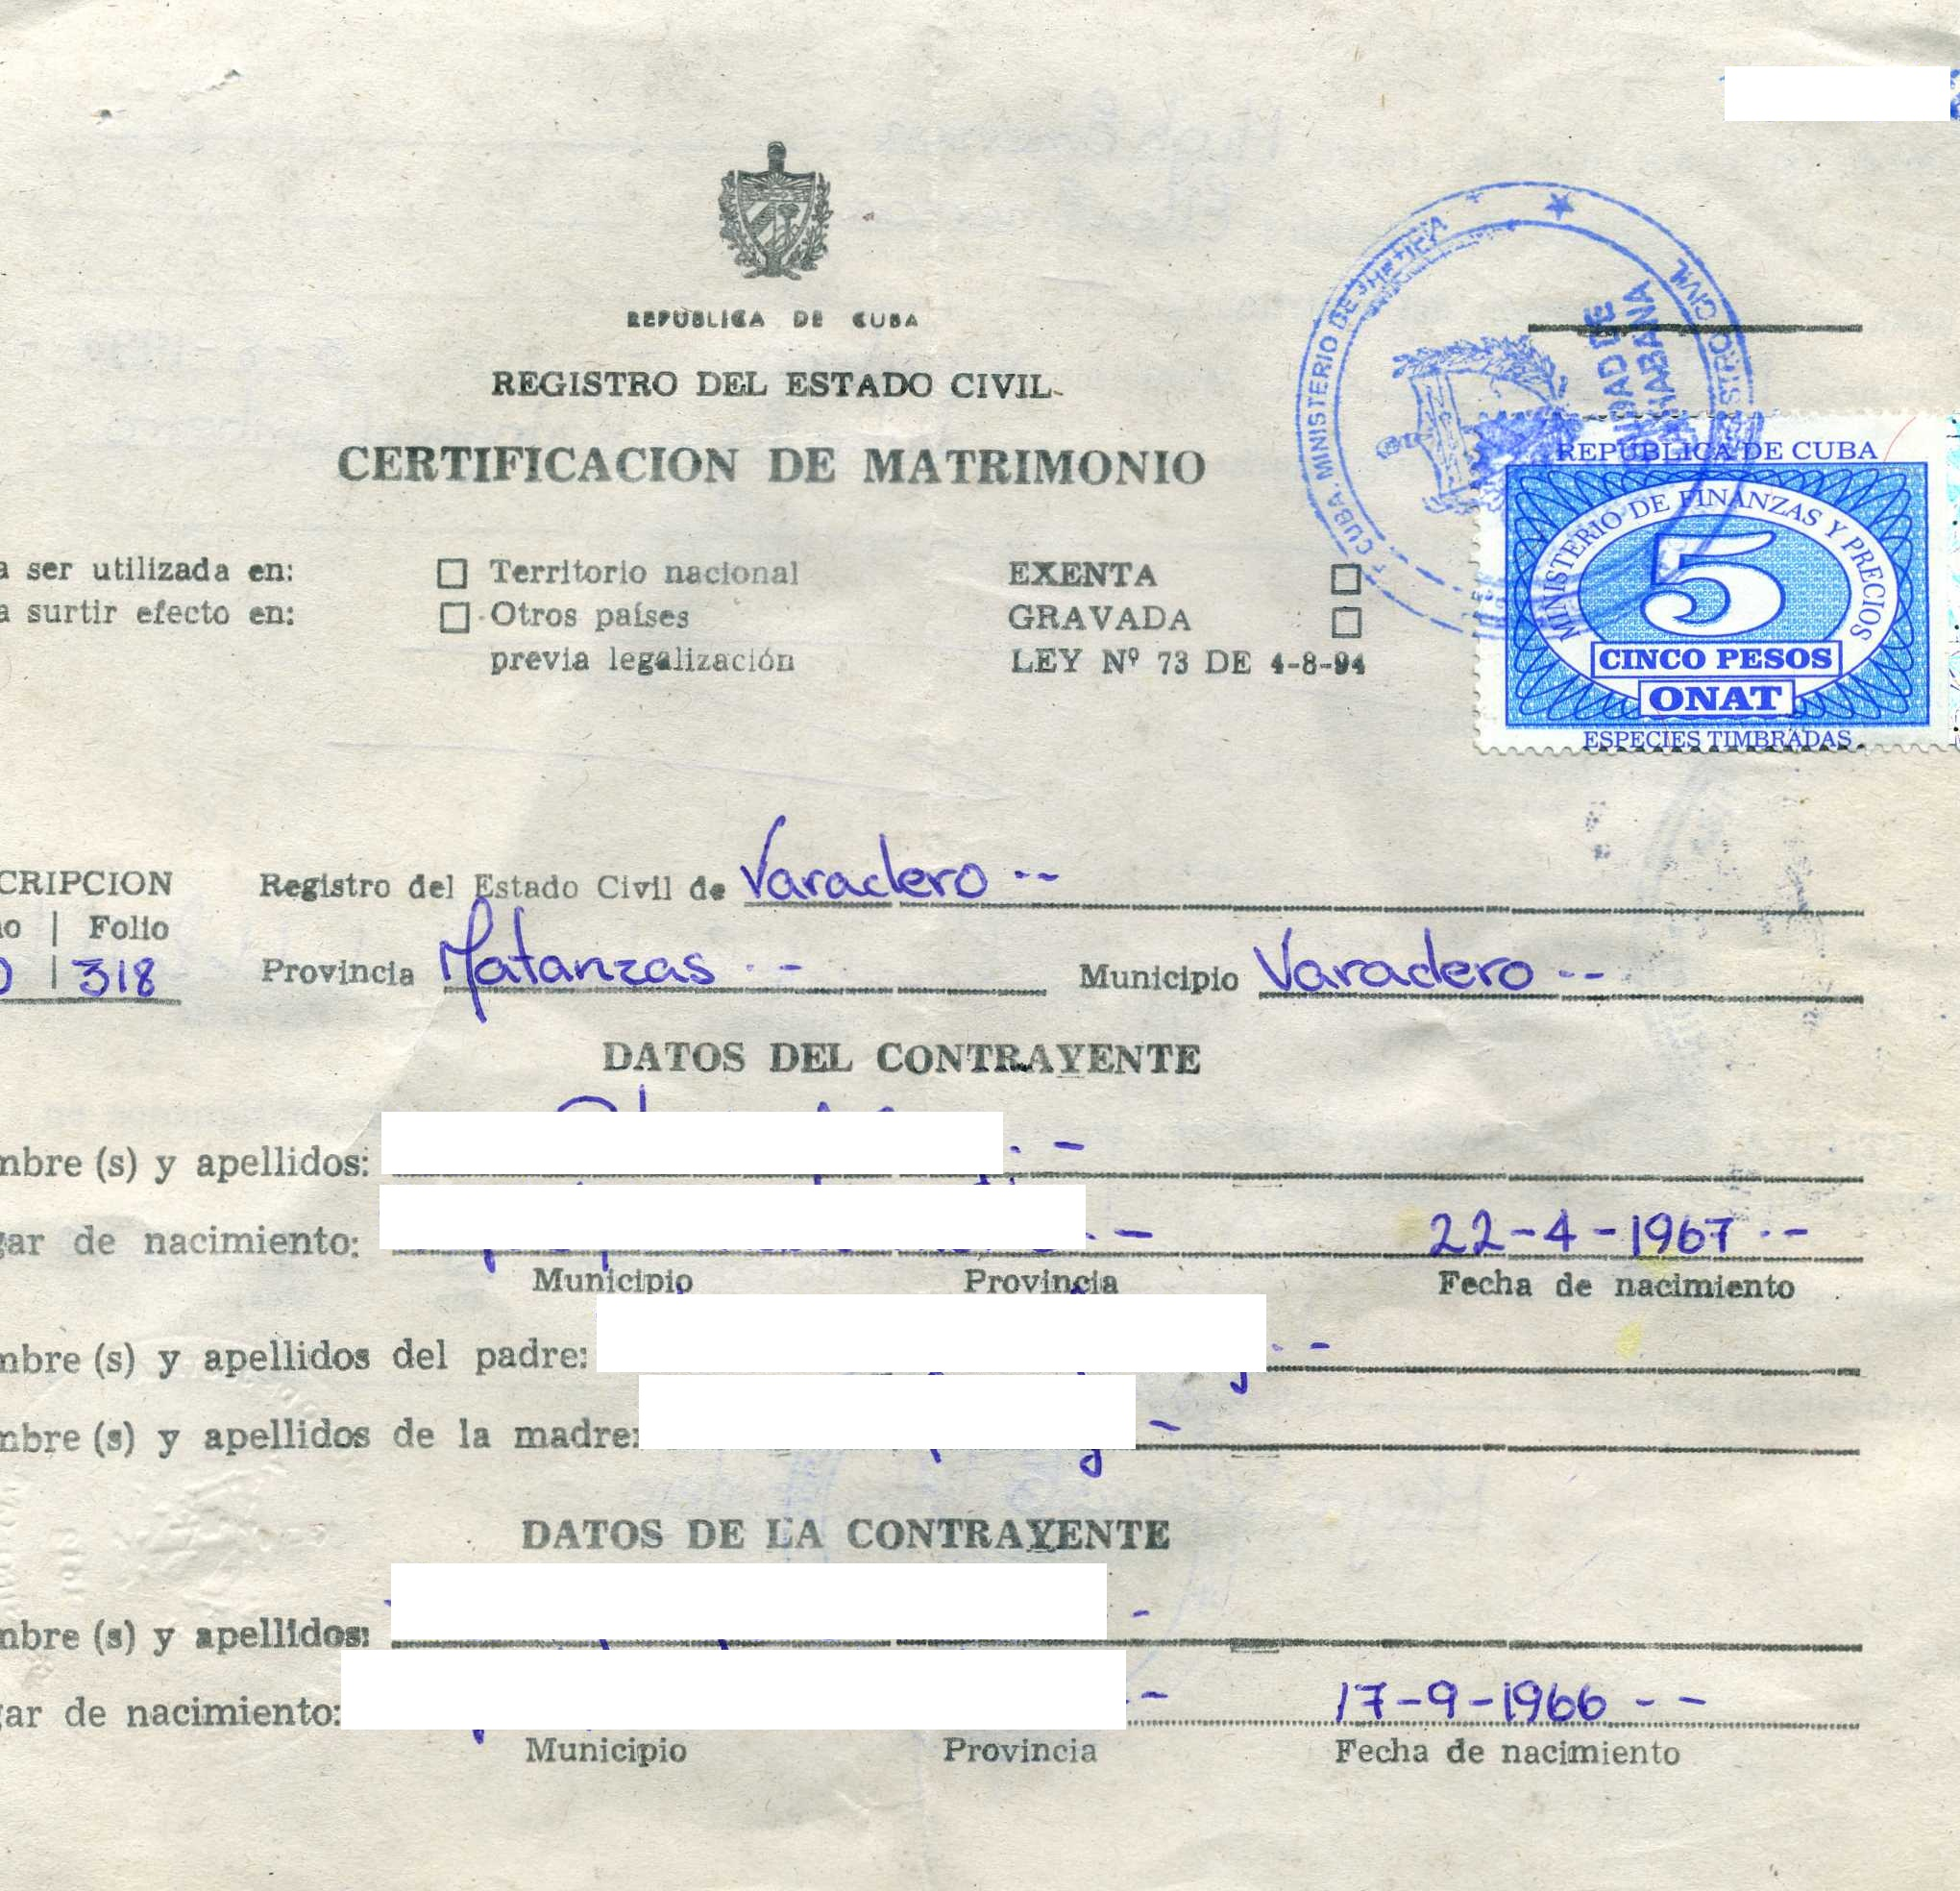 Cuban marriage certificate front